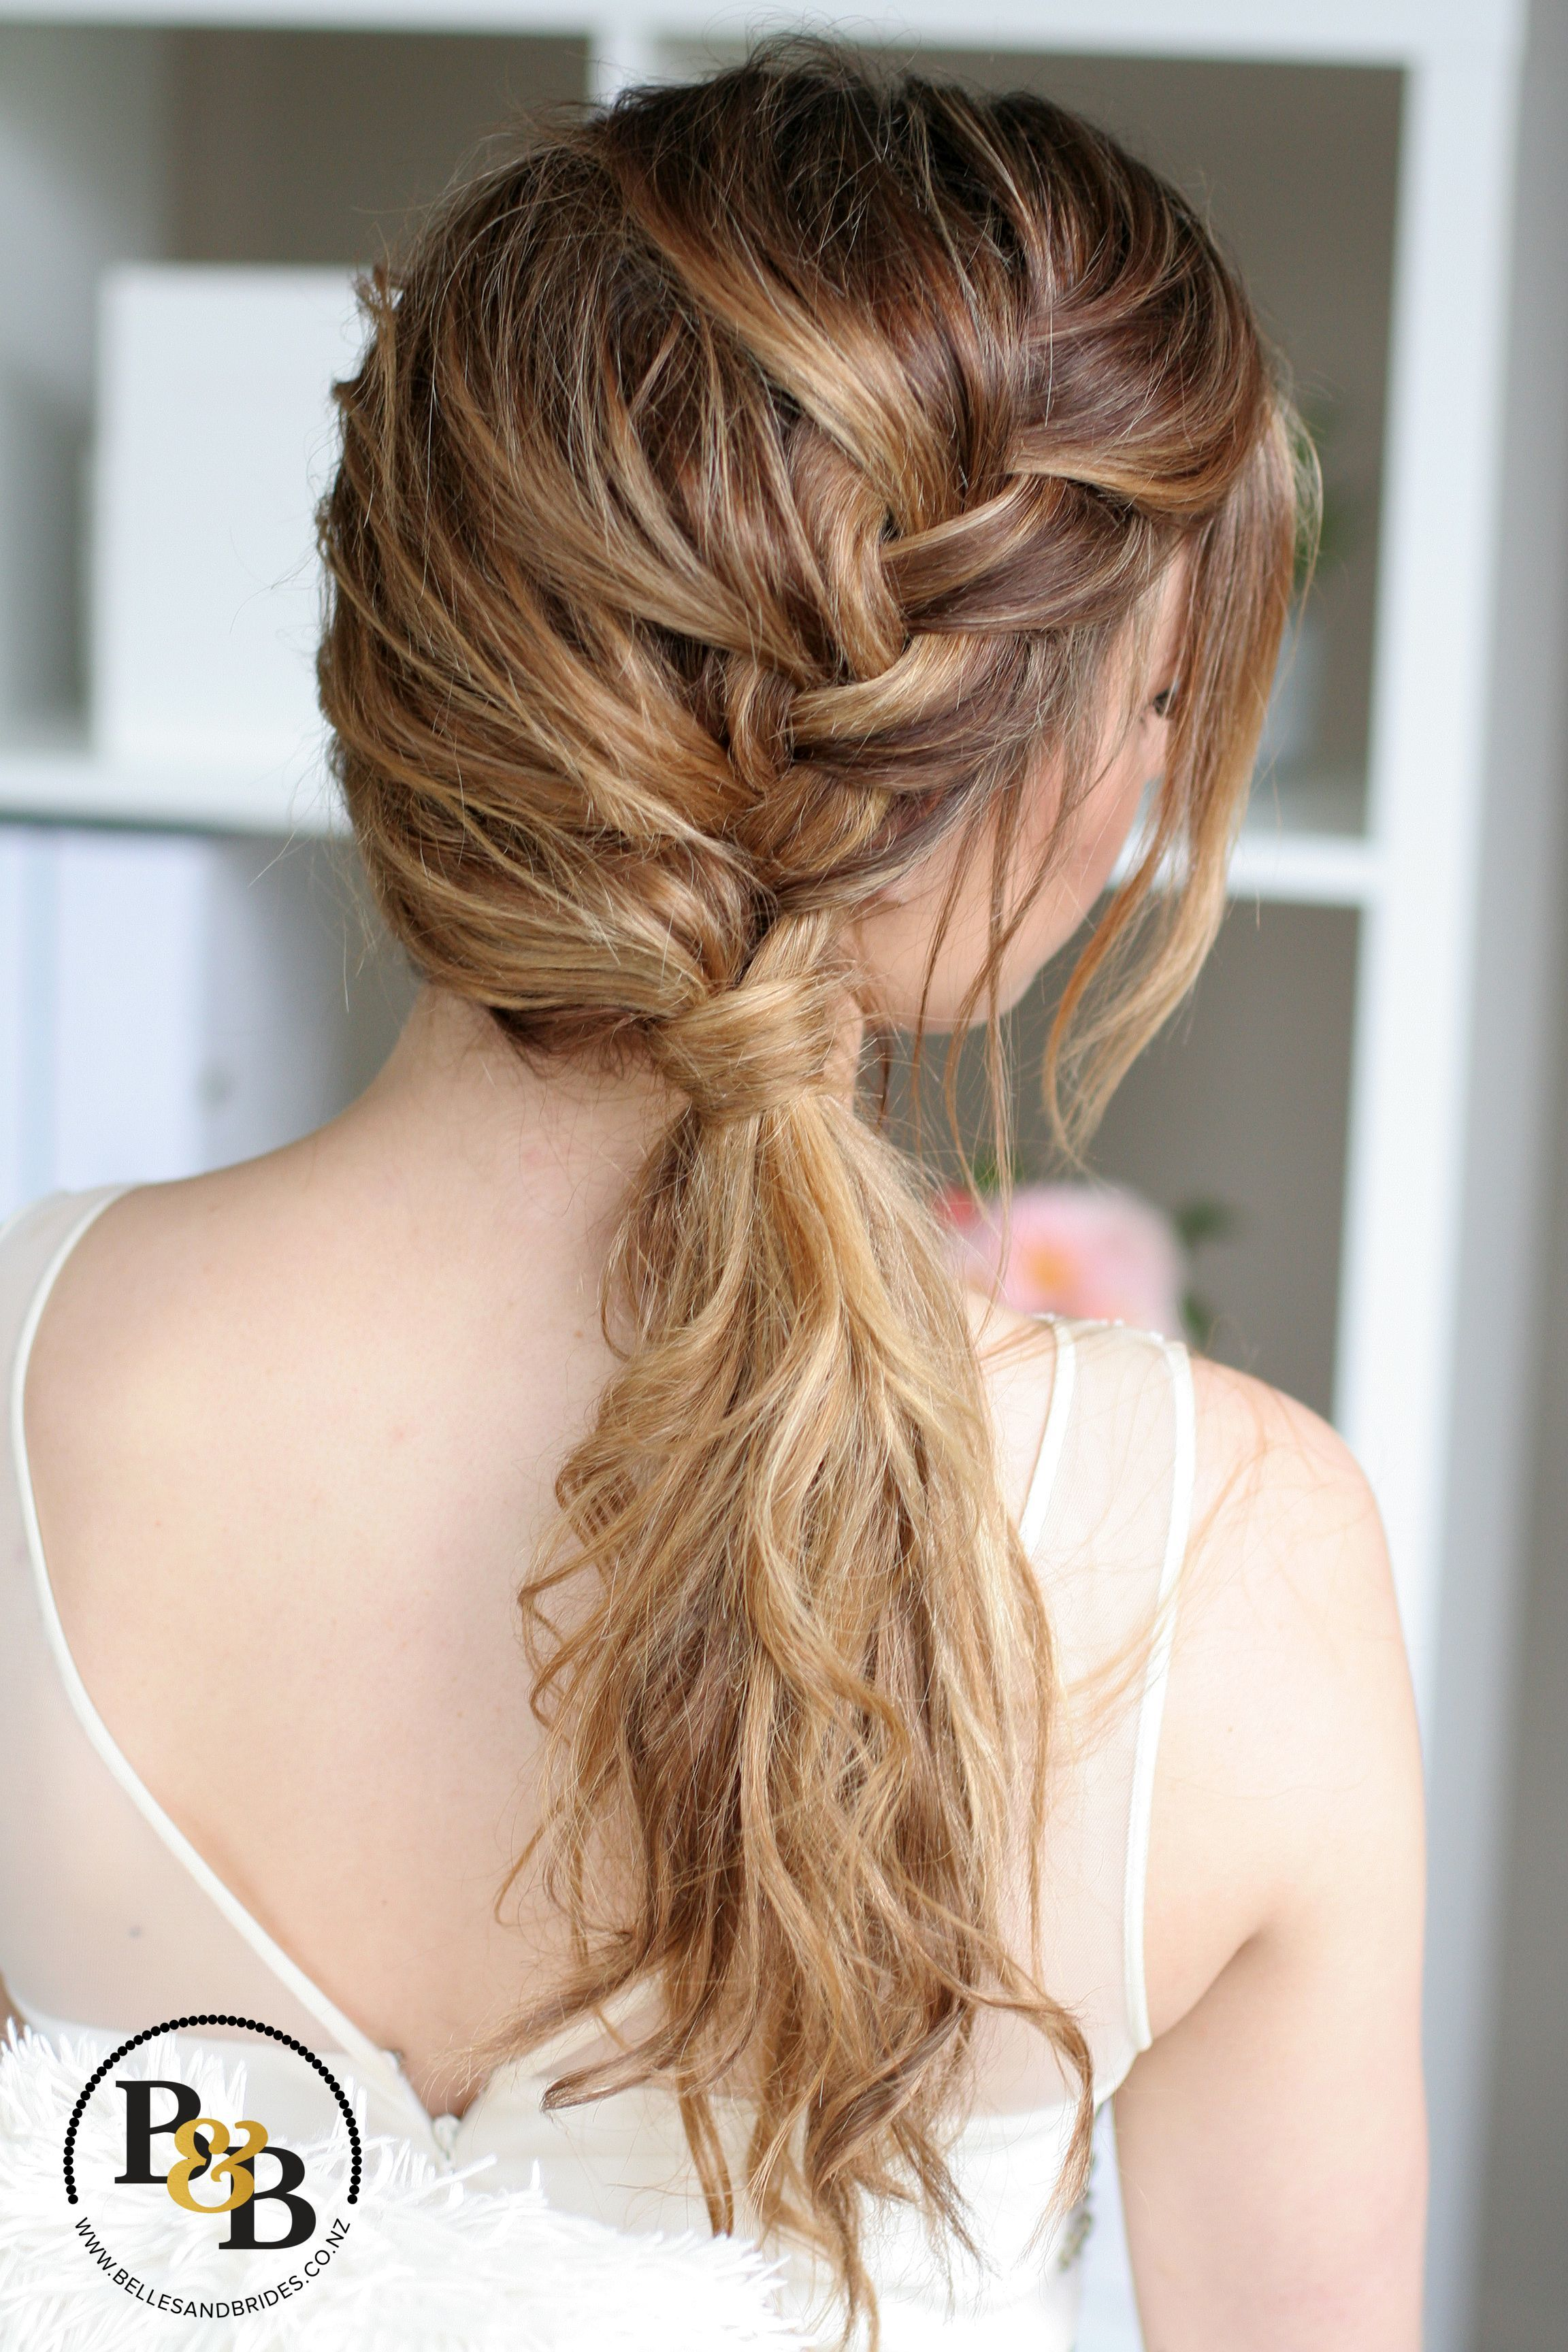 wedding hair down with braid #bridesmaidhairwithbraid